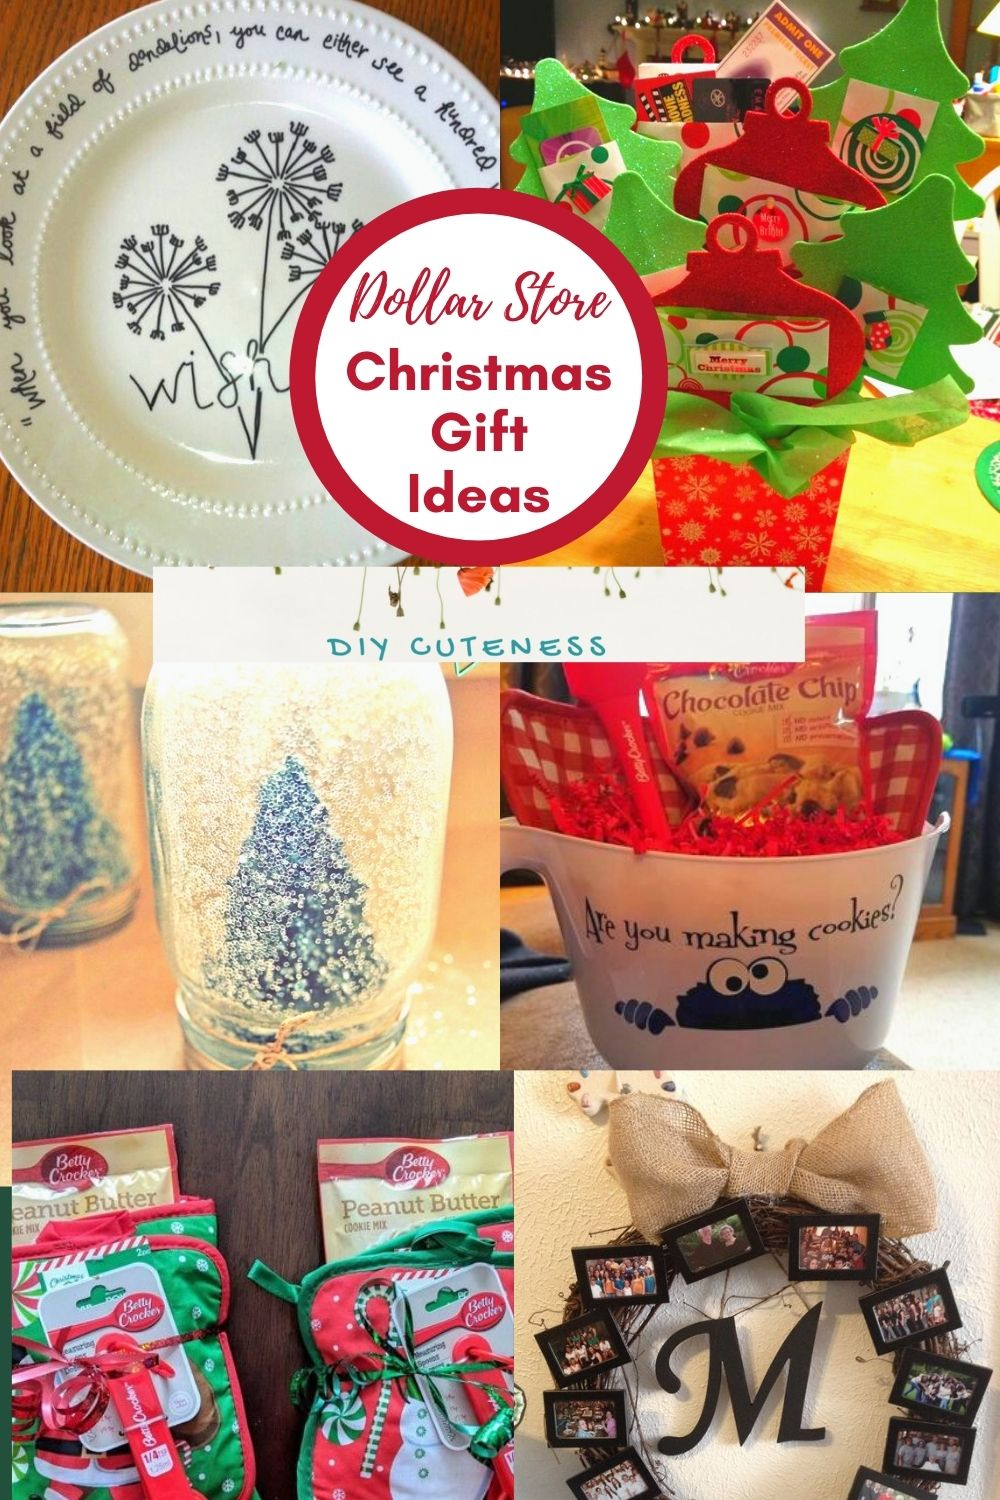 Dollar Store Christmas Gift Ideas